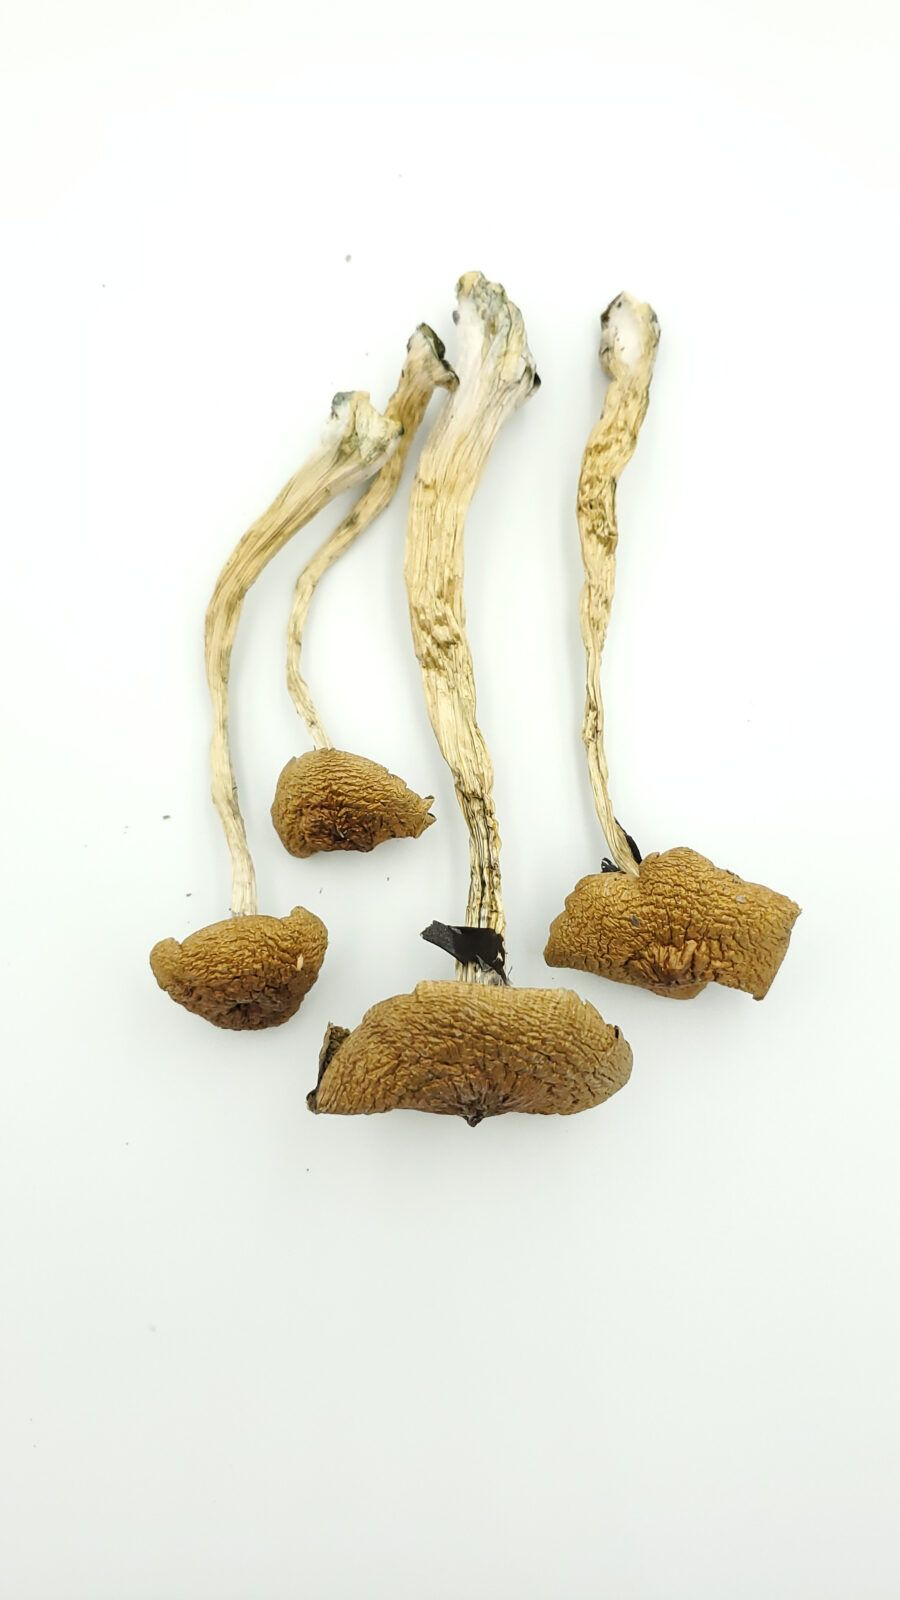 Cambodian Cubensis product picture